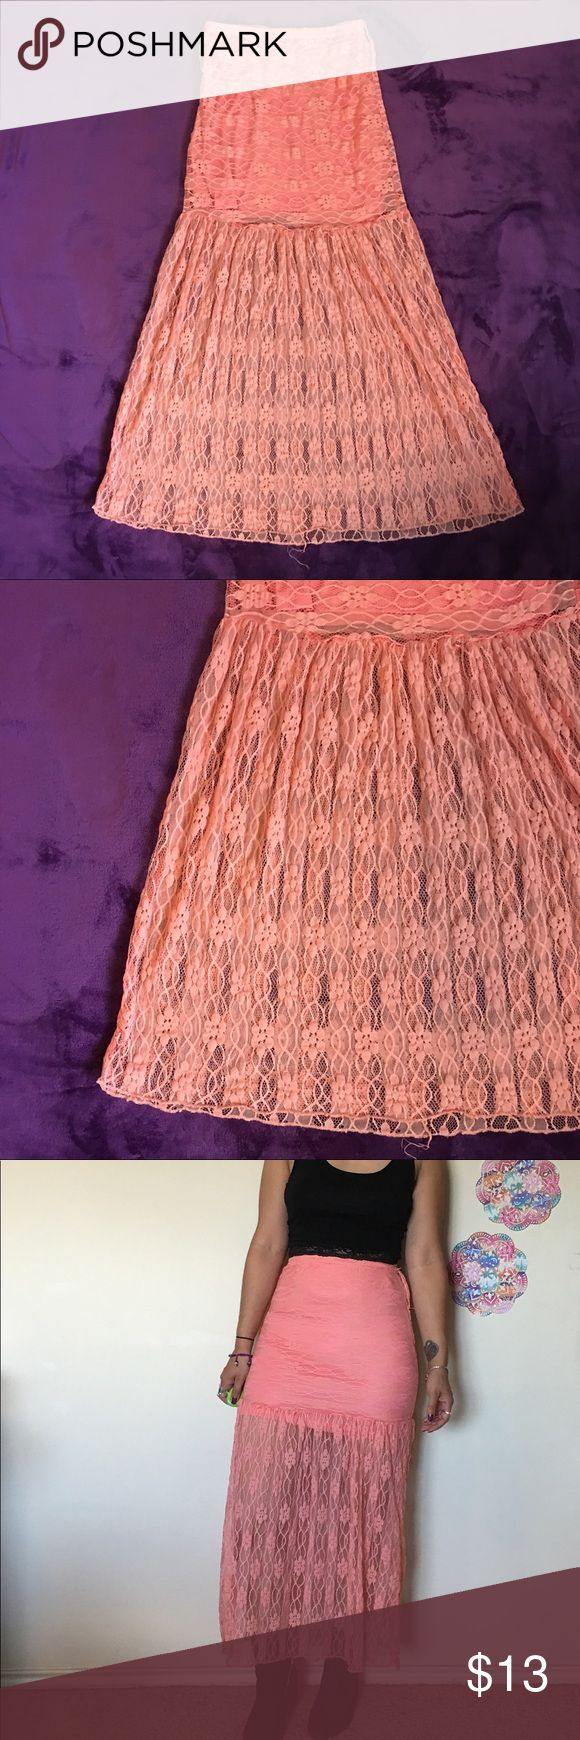 "Rue 21 Peach long festival lace maxi skirt Length: 35"" Waist: 11"" 95% nylon 5% spandex  - elastic waist band  **Model is 5'2"", small/medium, size 3/5 and 26"" waist.  All items are measured with garment laying flat. If you have any questions feel free to ask. Check out my other items listed Rue 21 Skirts Maxi"